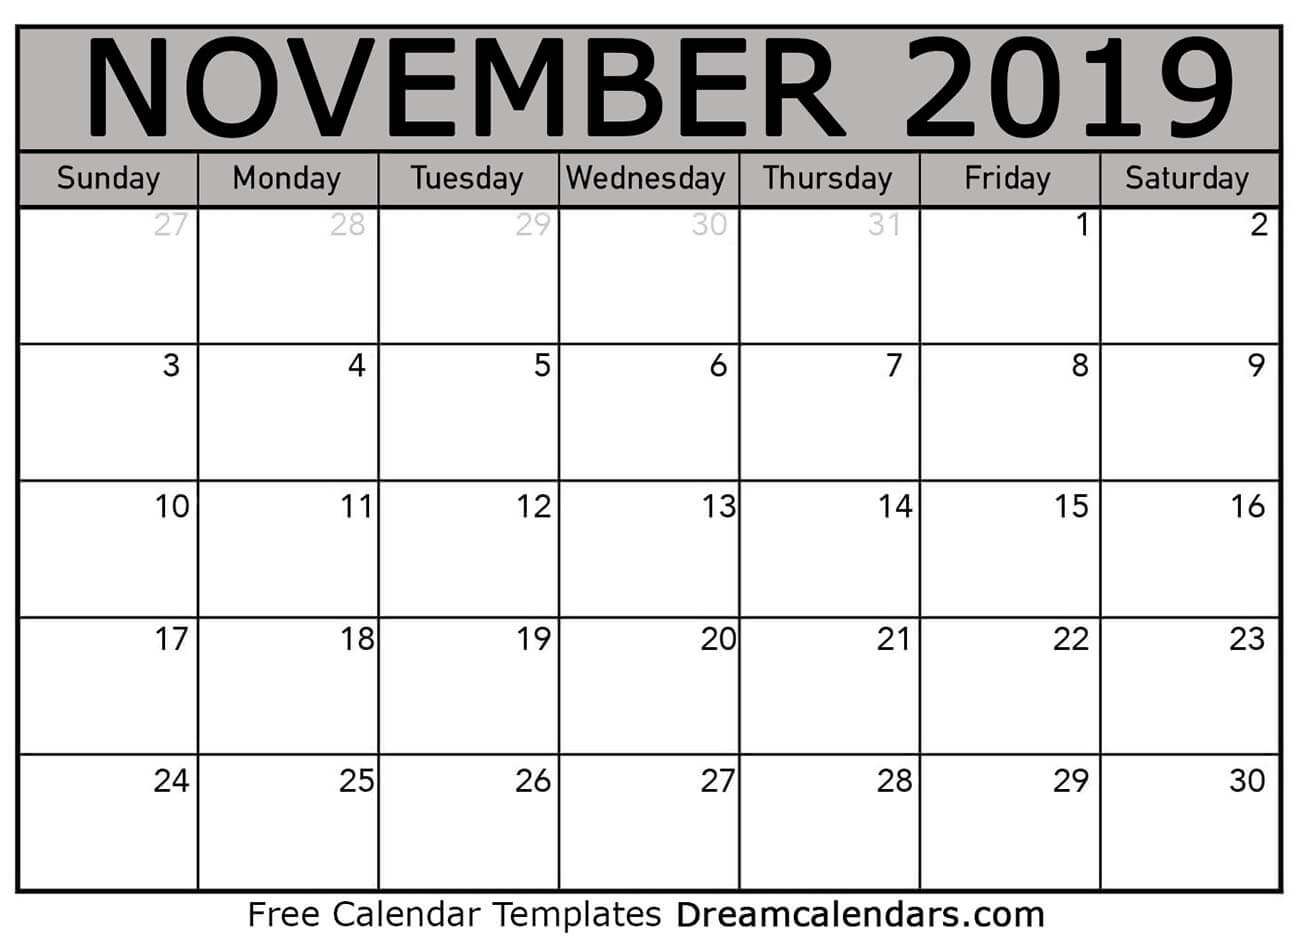 photo relating to Calendars Printable called Ko-fi - Printable November 2019 Calendar - Ko-fi ❤️ Wherever